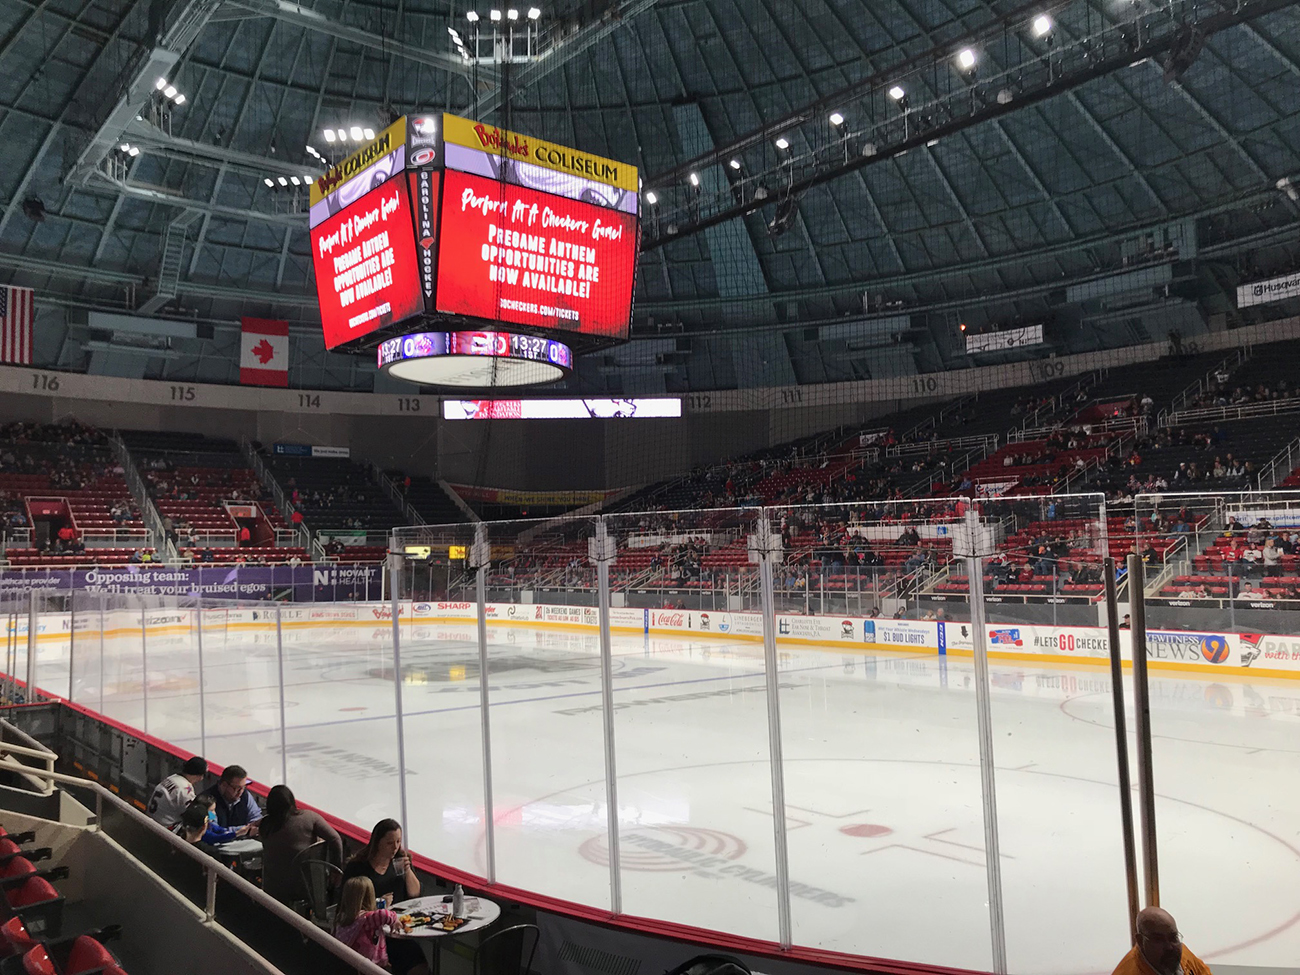 Mini Guide: 6 takeaways from attending my first Charlotte Checkers hockey game